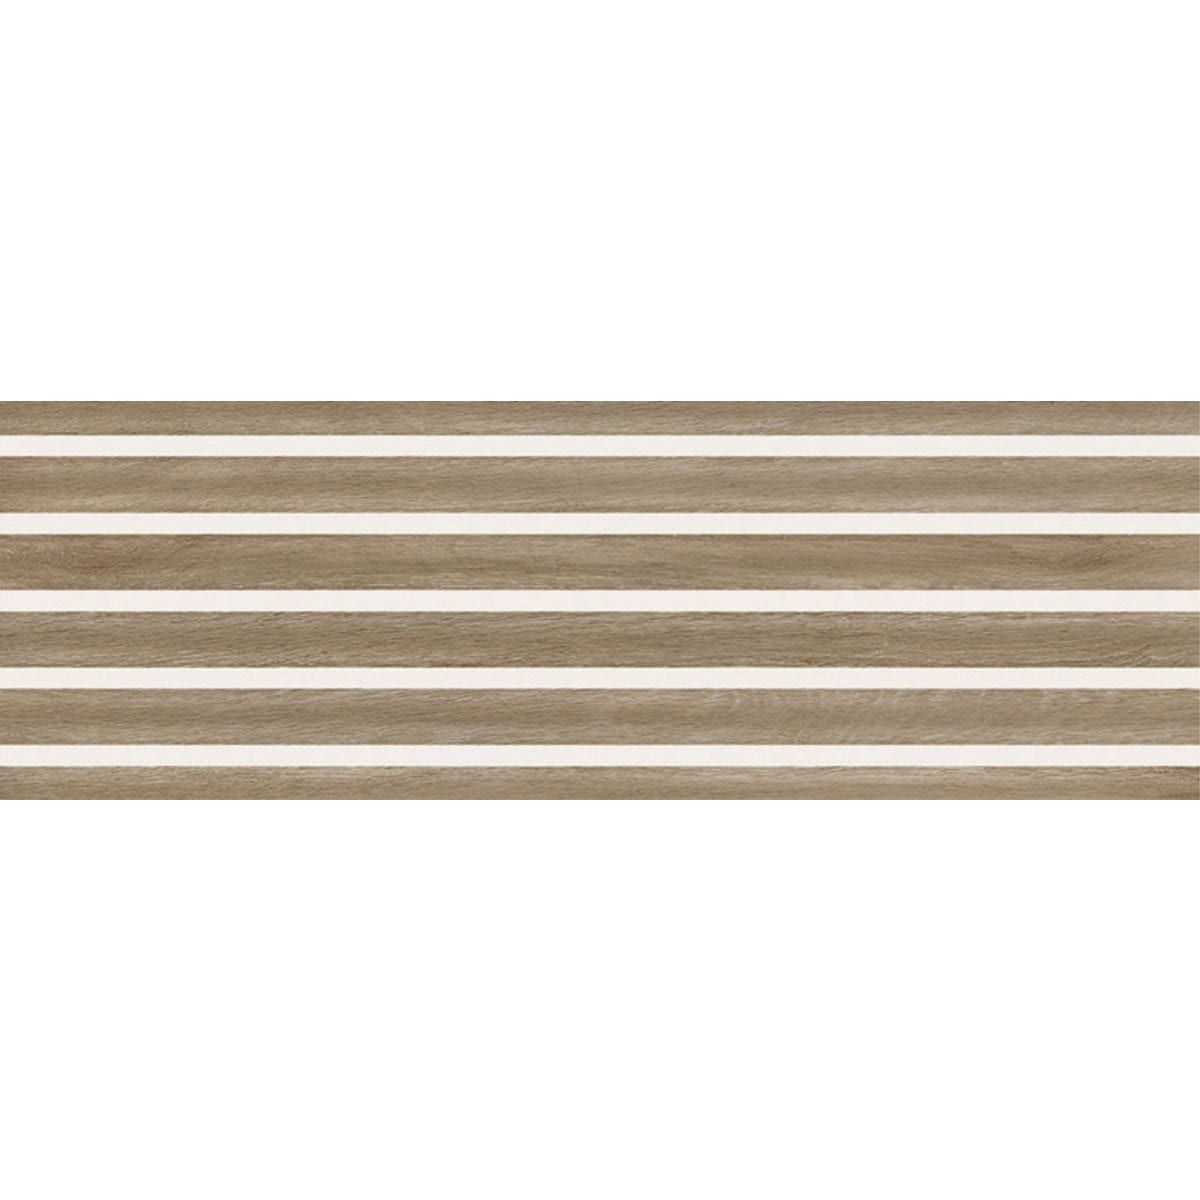 W00074 9523 Almond Relieve Wood 12X36 P1